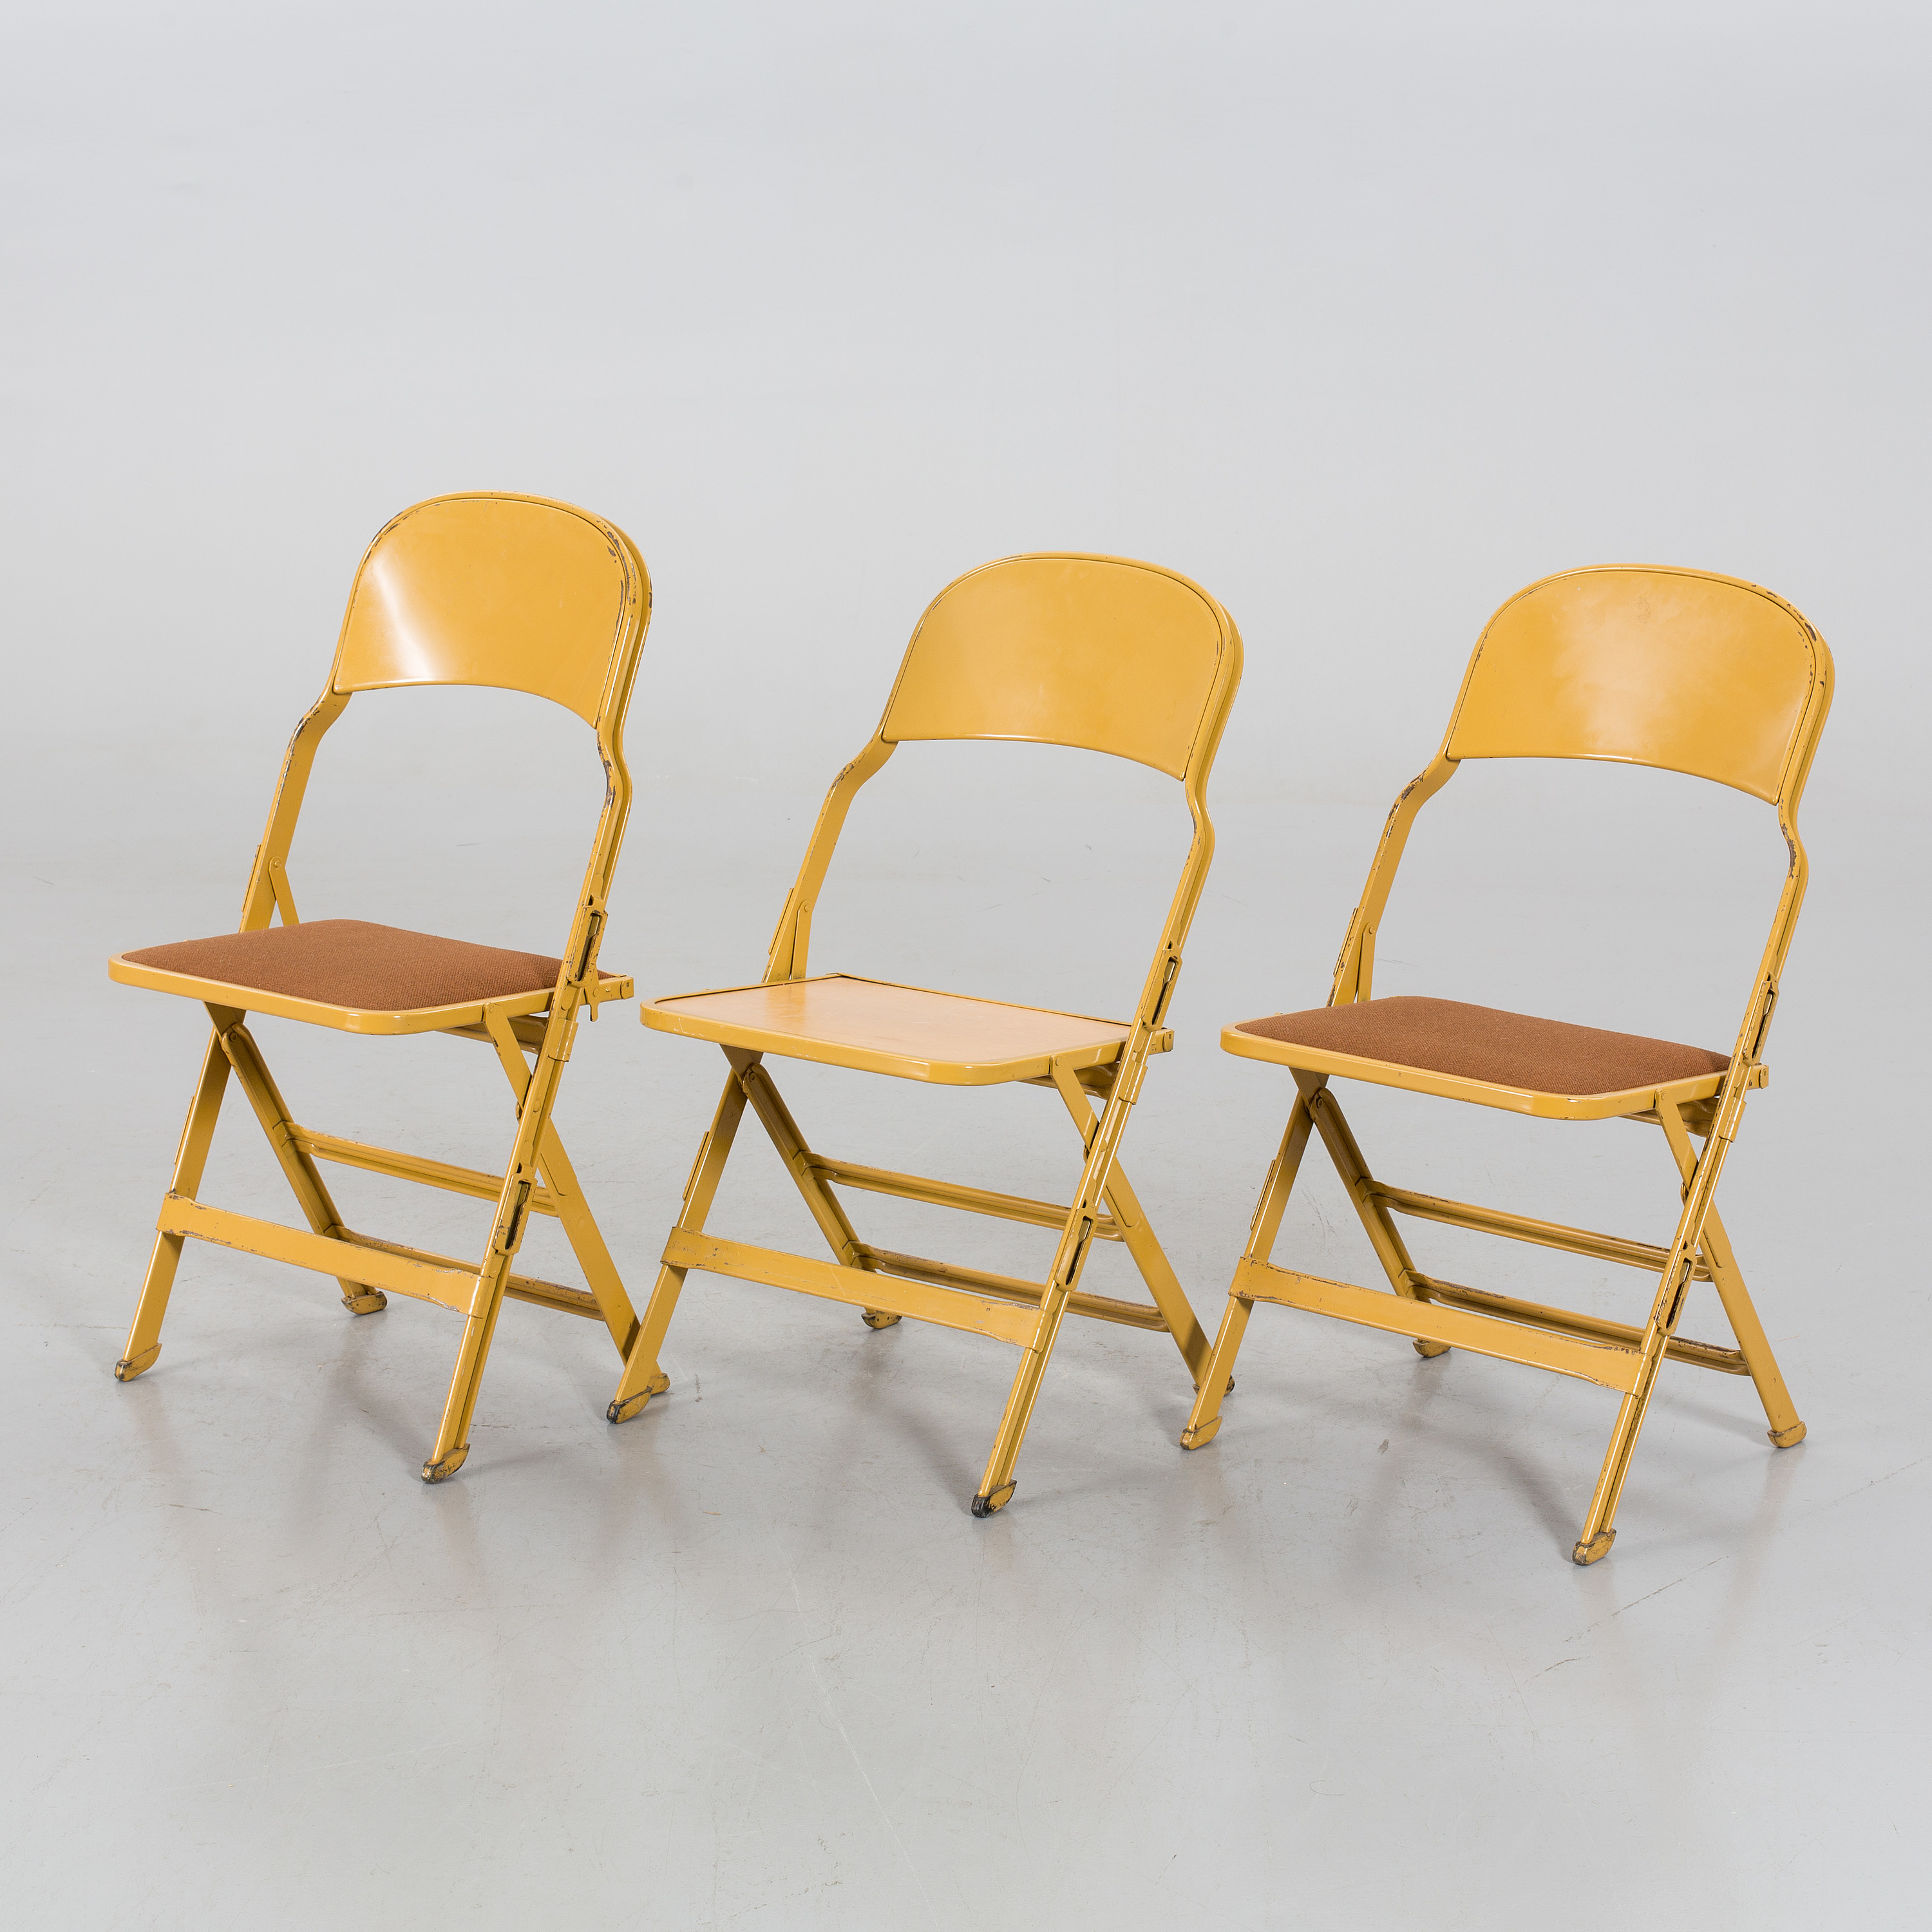 Prime A Set Of 3 Folding Chairs By Clarin Mfg Co Chicago Usa Bralicious Painted Fabric Chair Ideas Braliciousco